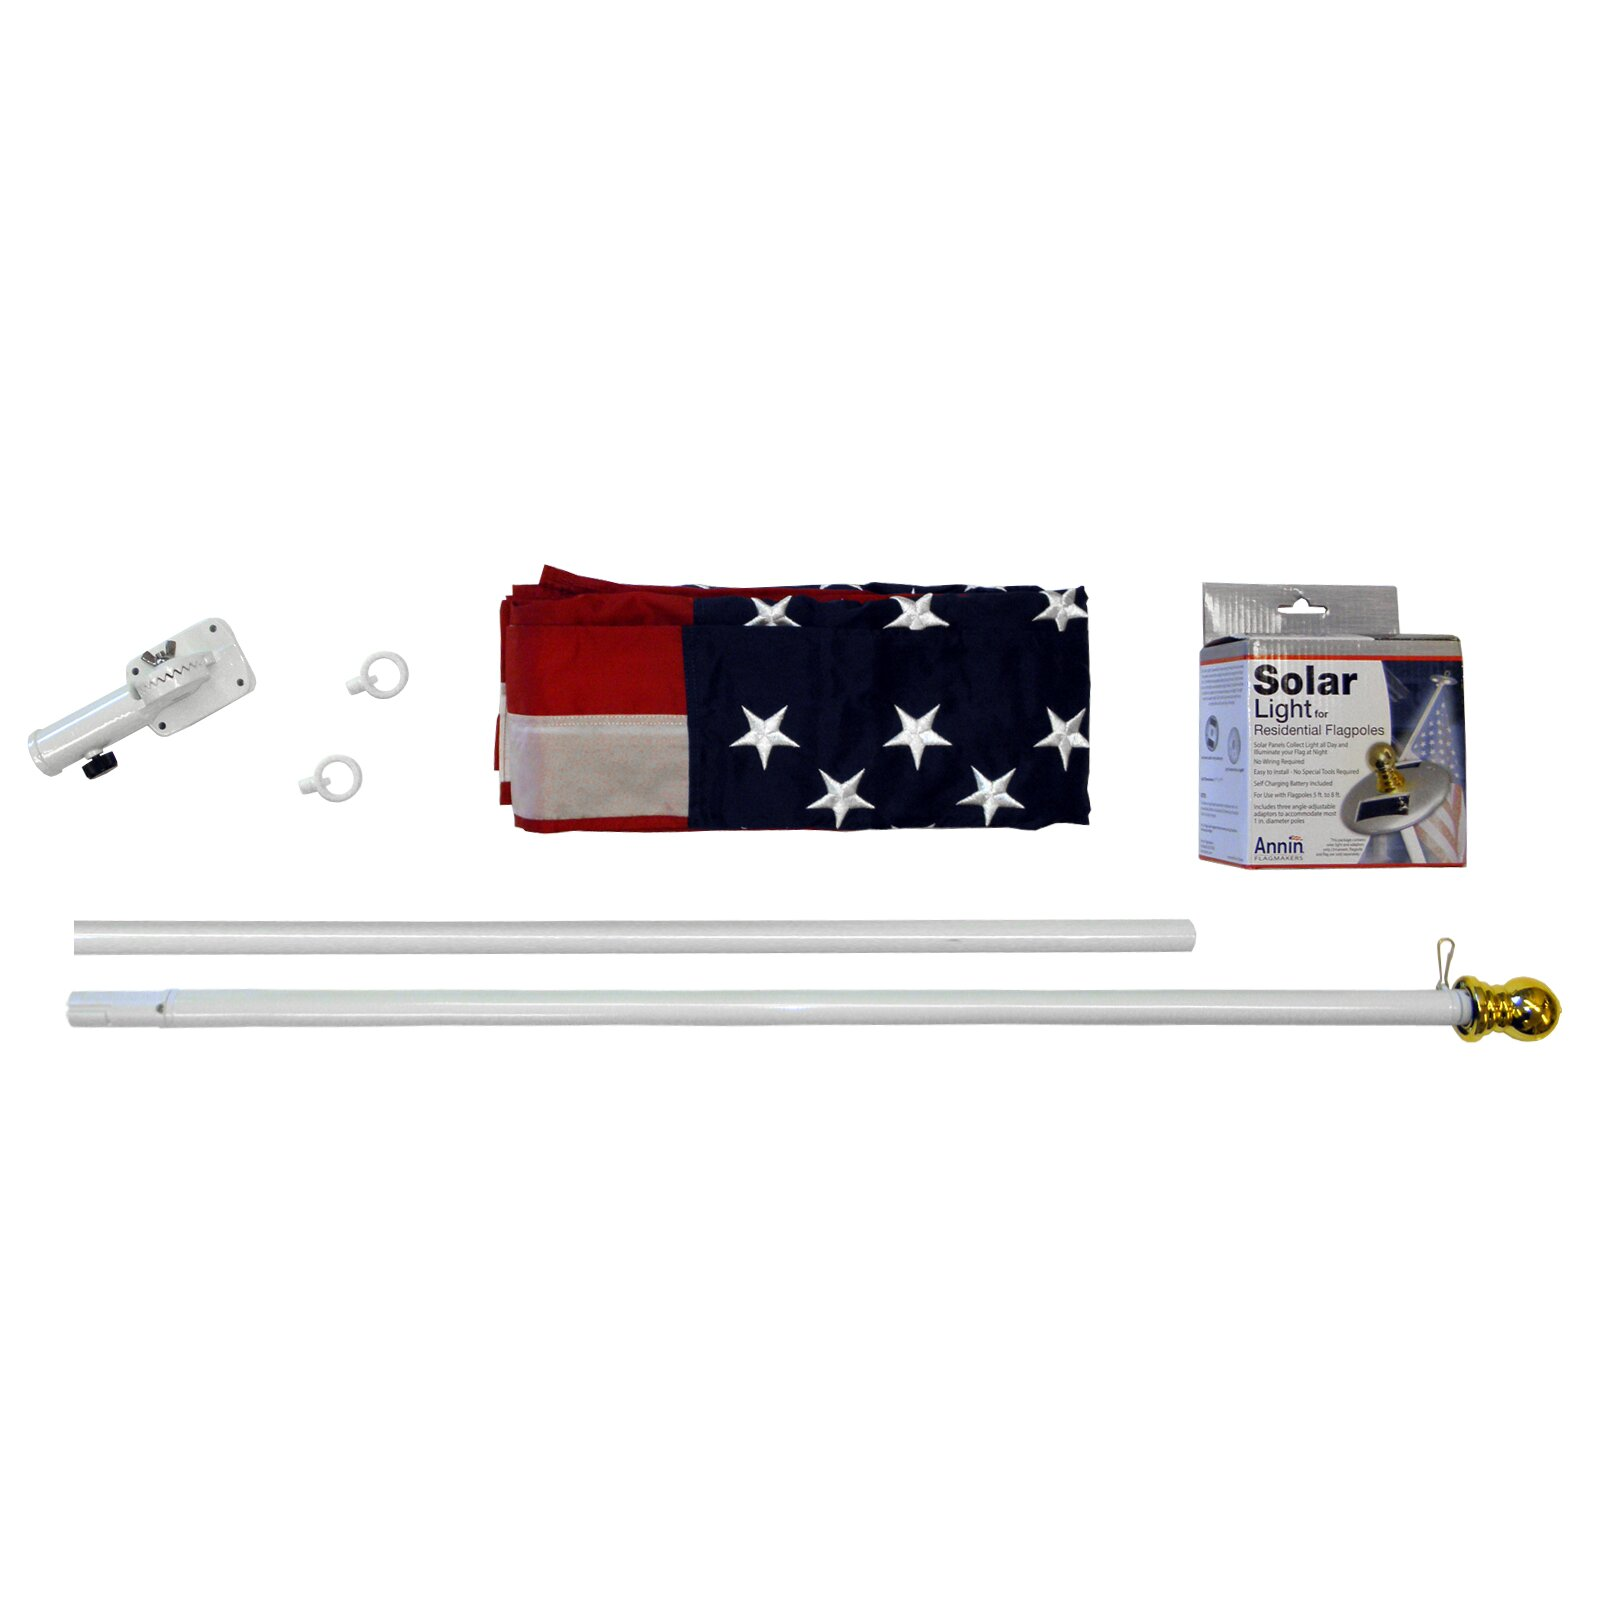 Next Deal Shop Solar Lights Reviews: Annin Flagmakers Spinning Flagpole With US Flag And Mini